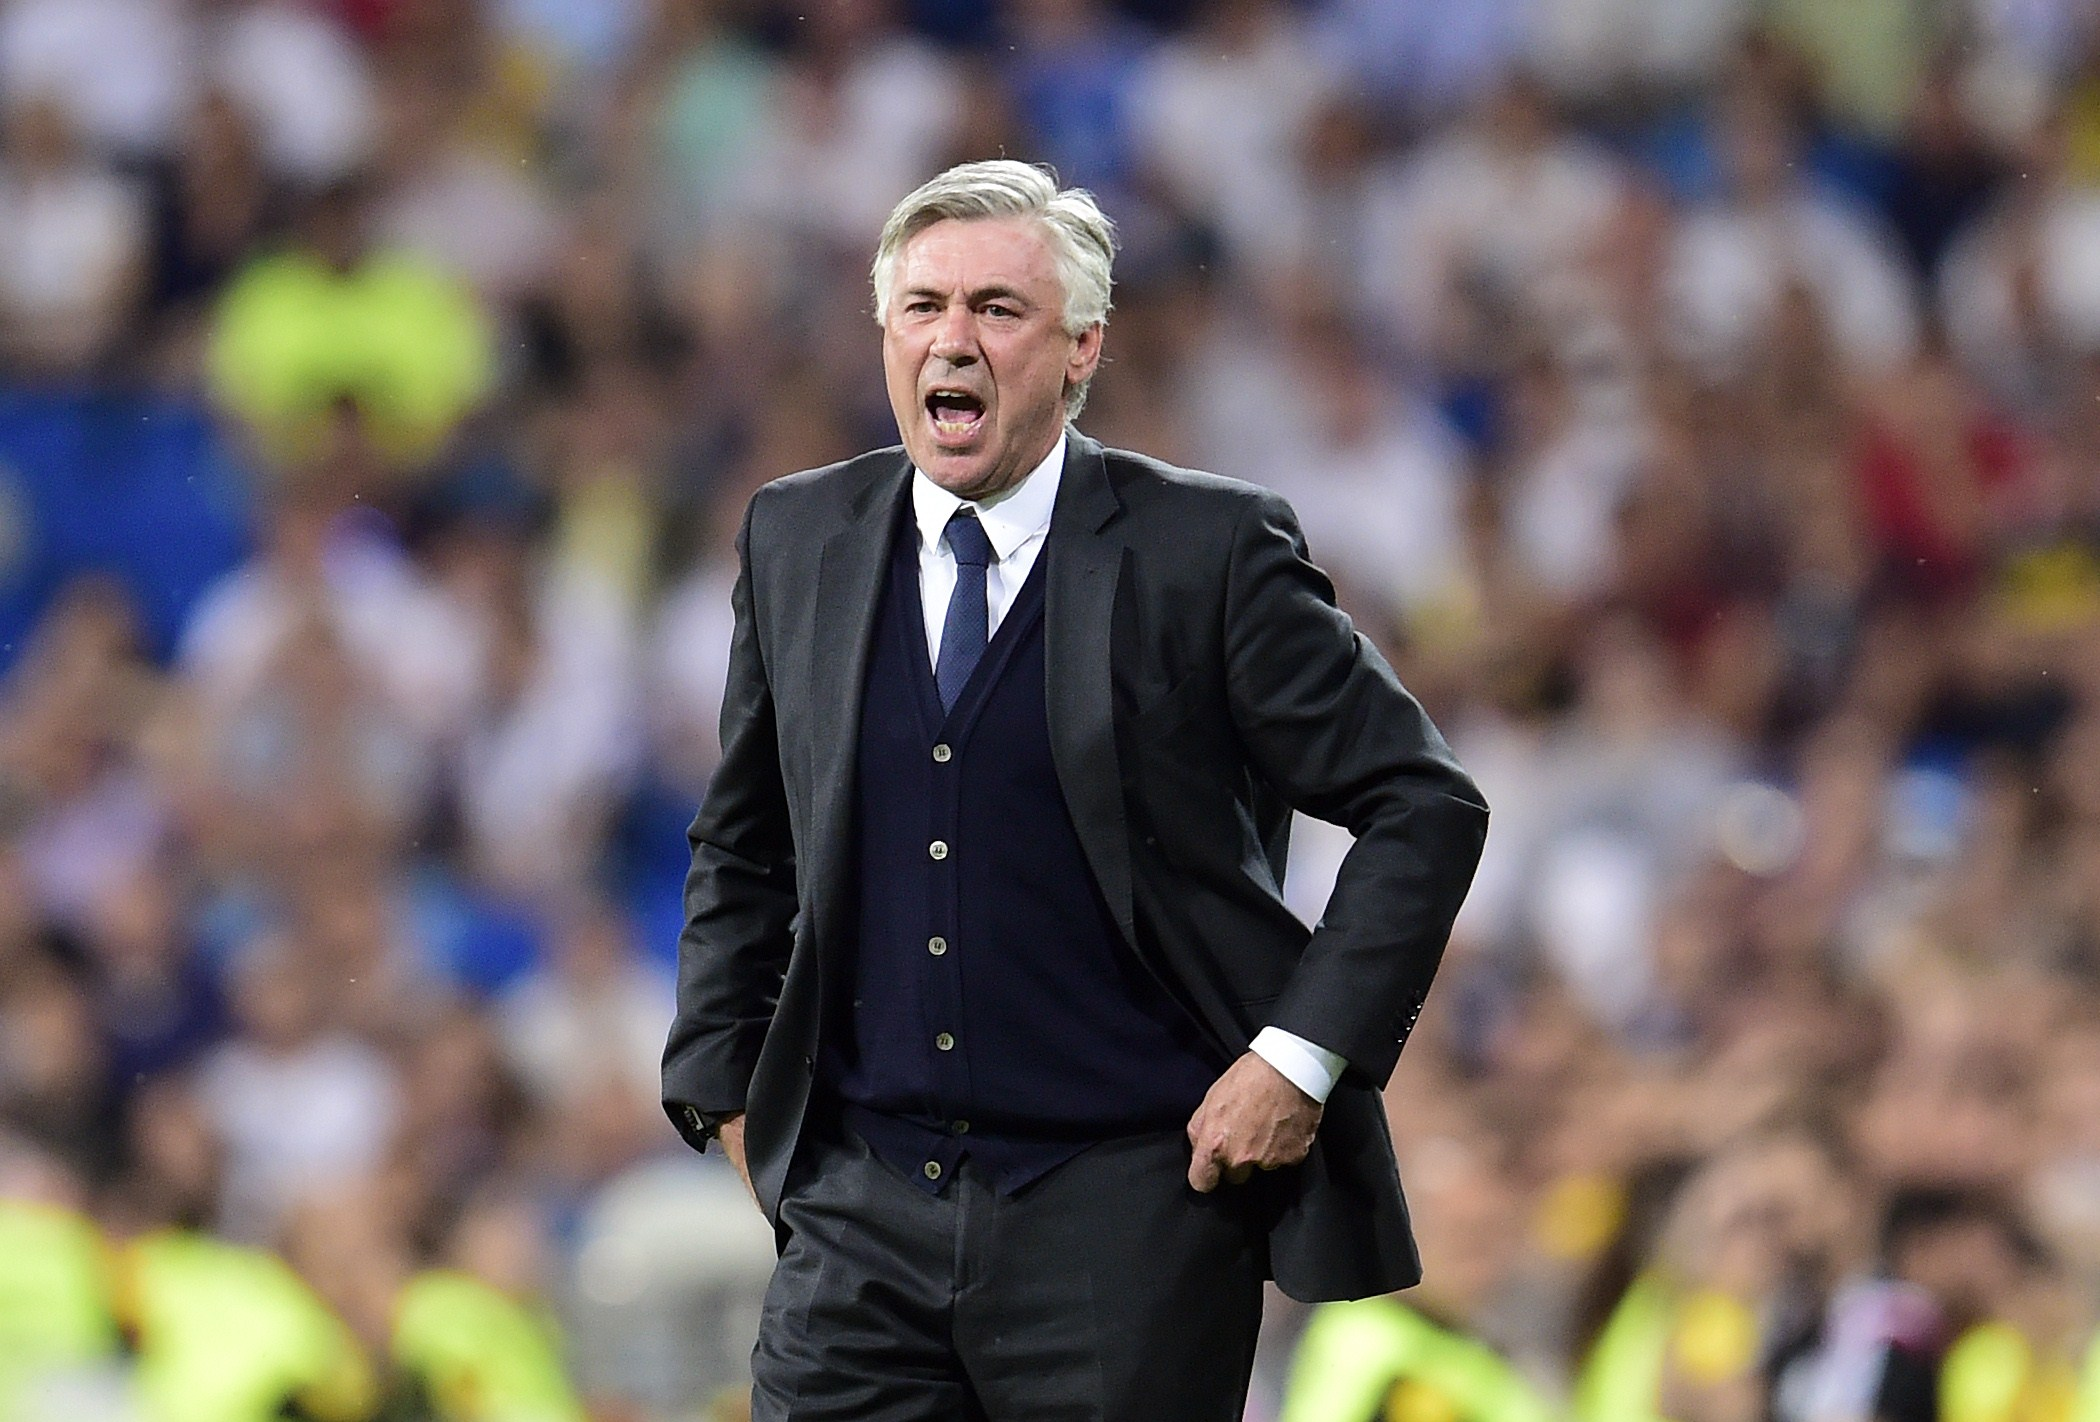 Real Madrid's Italian coach Carlo Ancelotti gestures during the Spanish league football match Real Madrid CF vs Valencia CF at the Santiago Bernabeu stadium in Madrid on May 9, 2015. The game ended with a draw 2-2. AFP PHOTO/ GERARD JULIEN (Photo credit should read GERARD JULIEN/AFP/Getty Images)